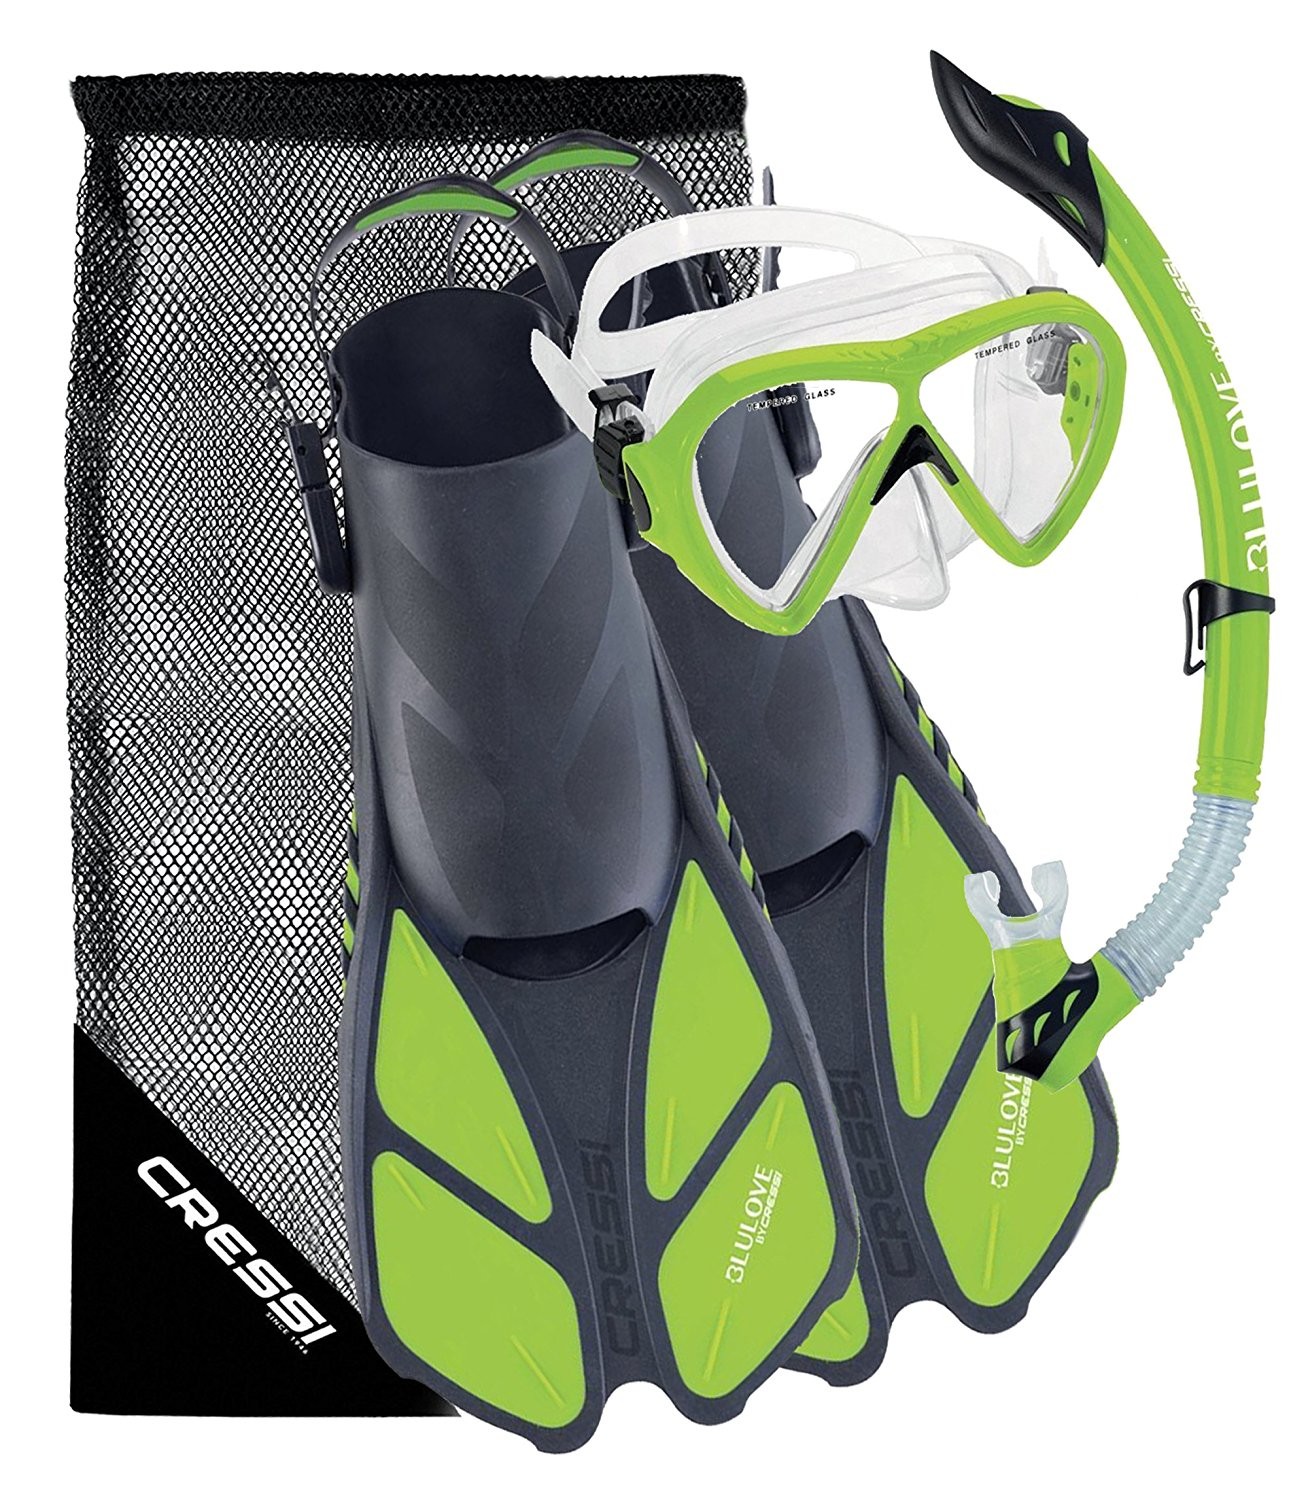 Cressi Bonete Bag Light Weight Travel Fun Snorkeling Set, Lime Green, Small   Medium by Cressi